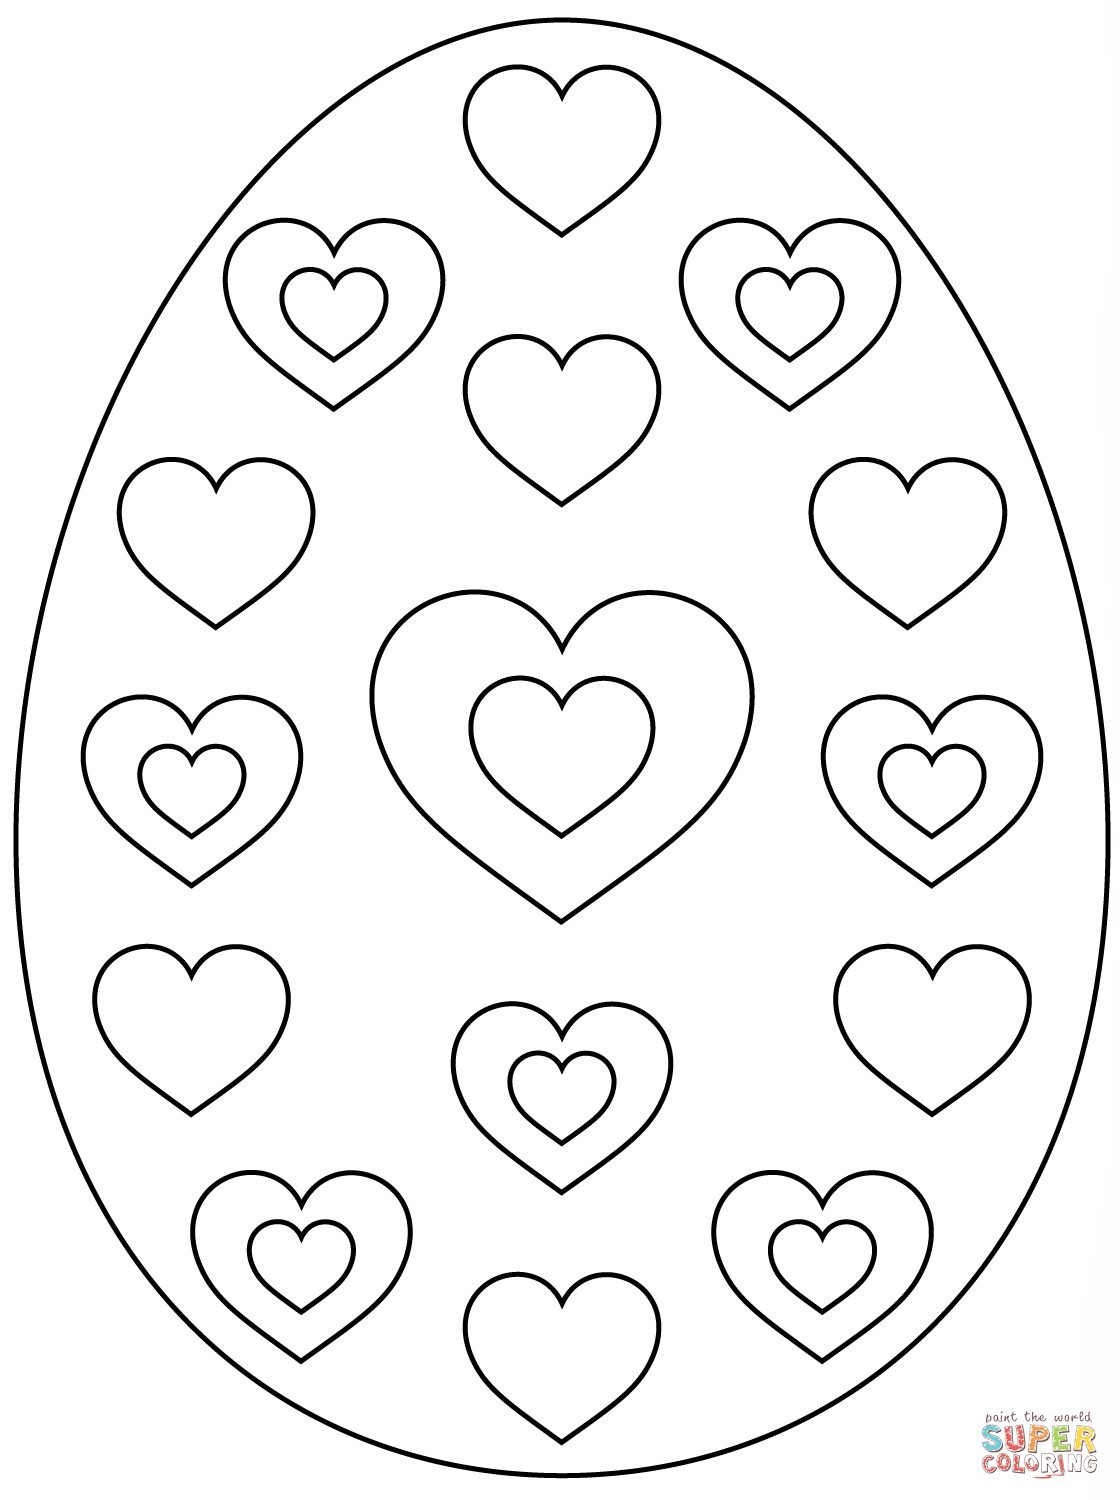 coloring easter egg easter egg with hearts coloring page free printable coloring egg easter